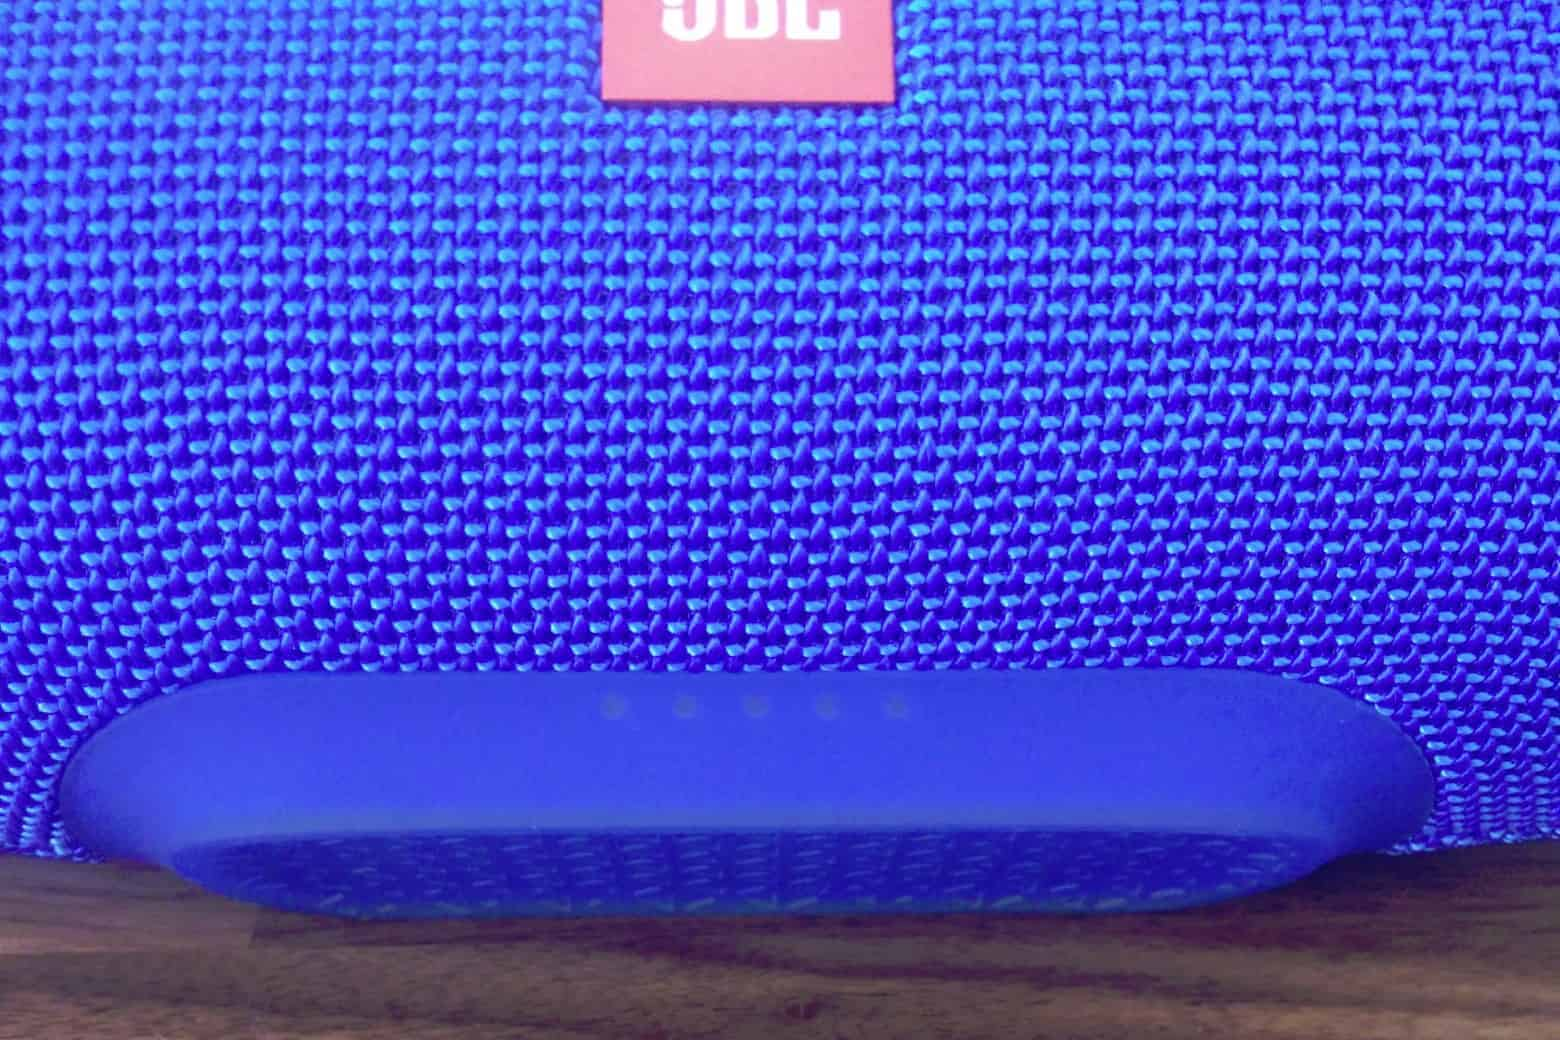 JBL-Charge-3-Photos-18 JBL Charge 3 Review